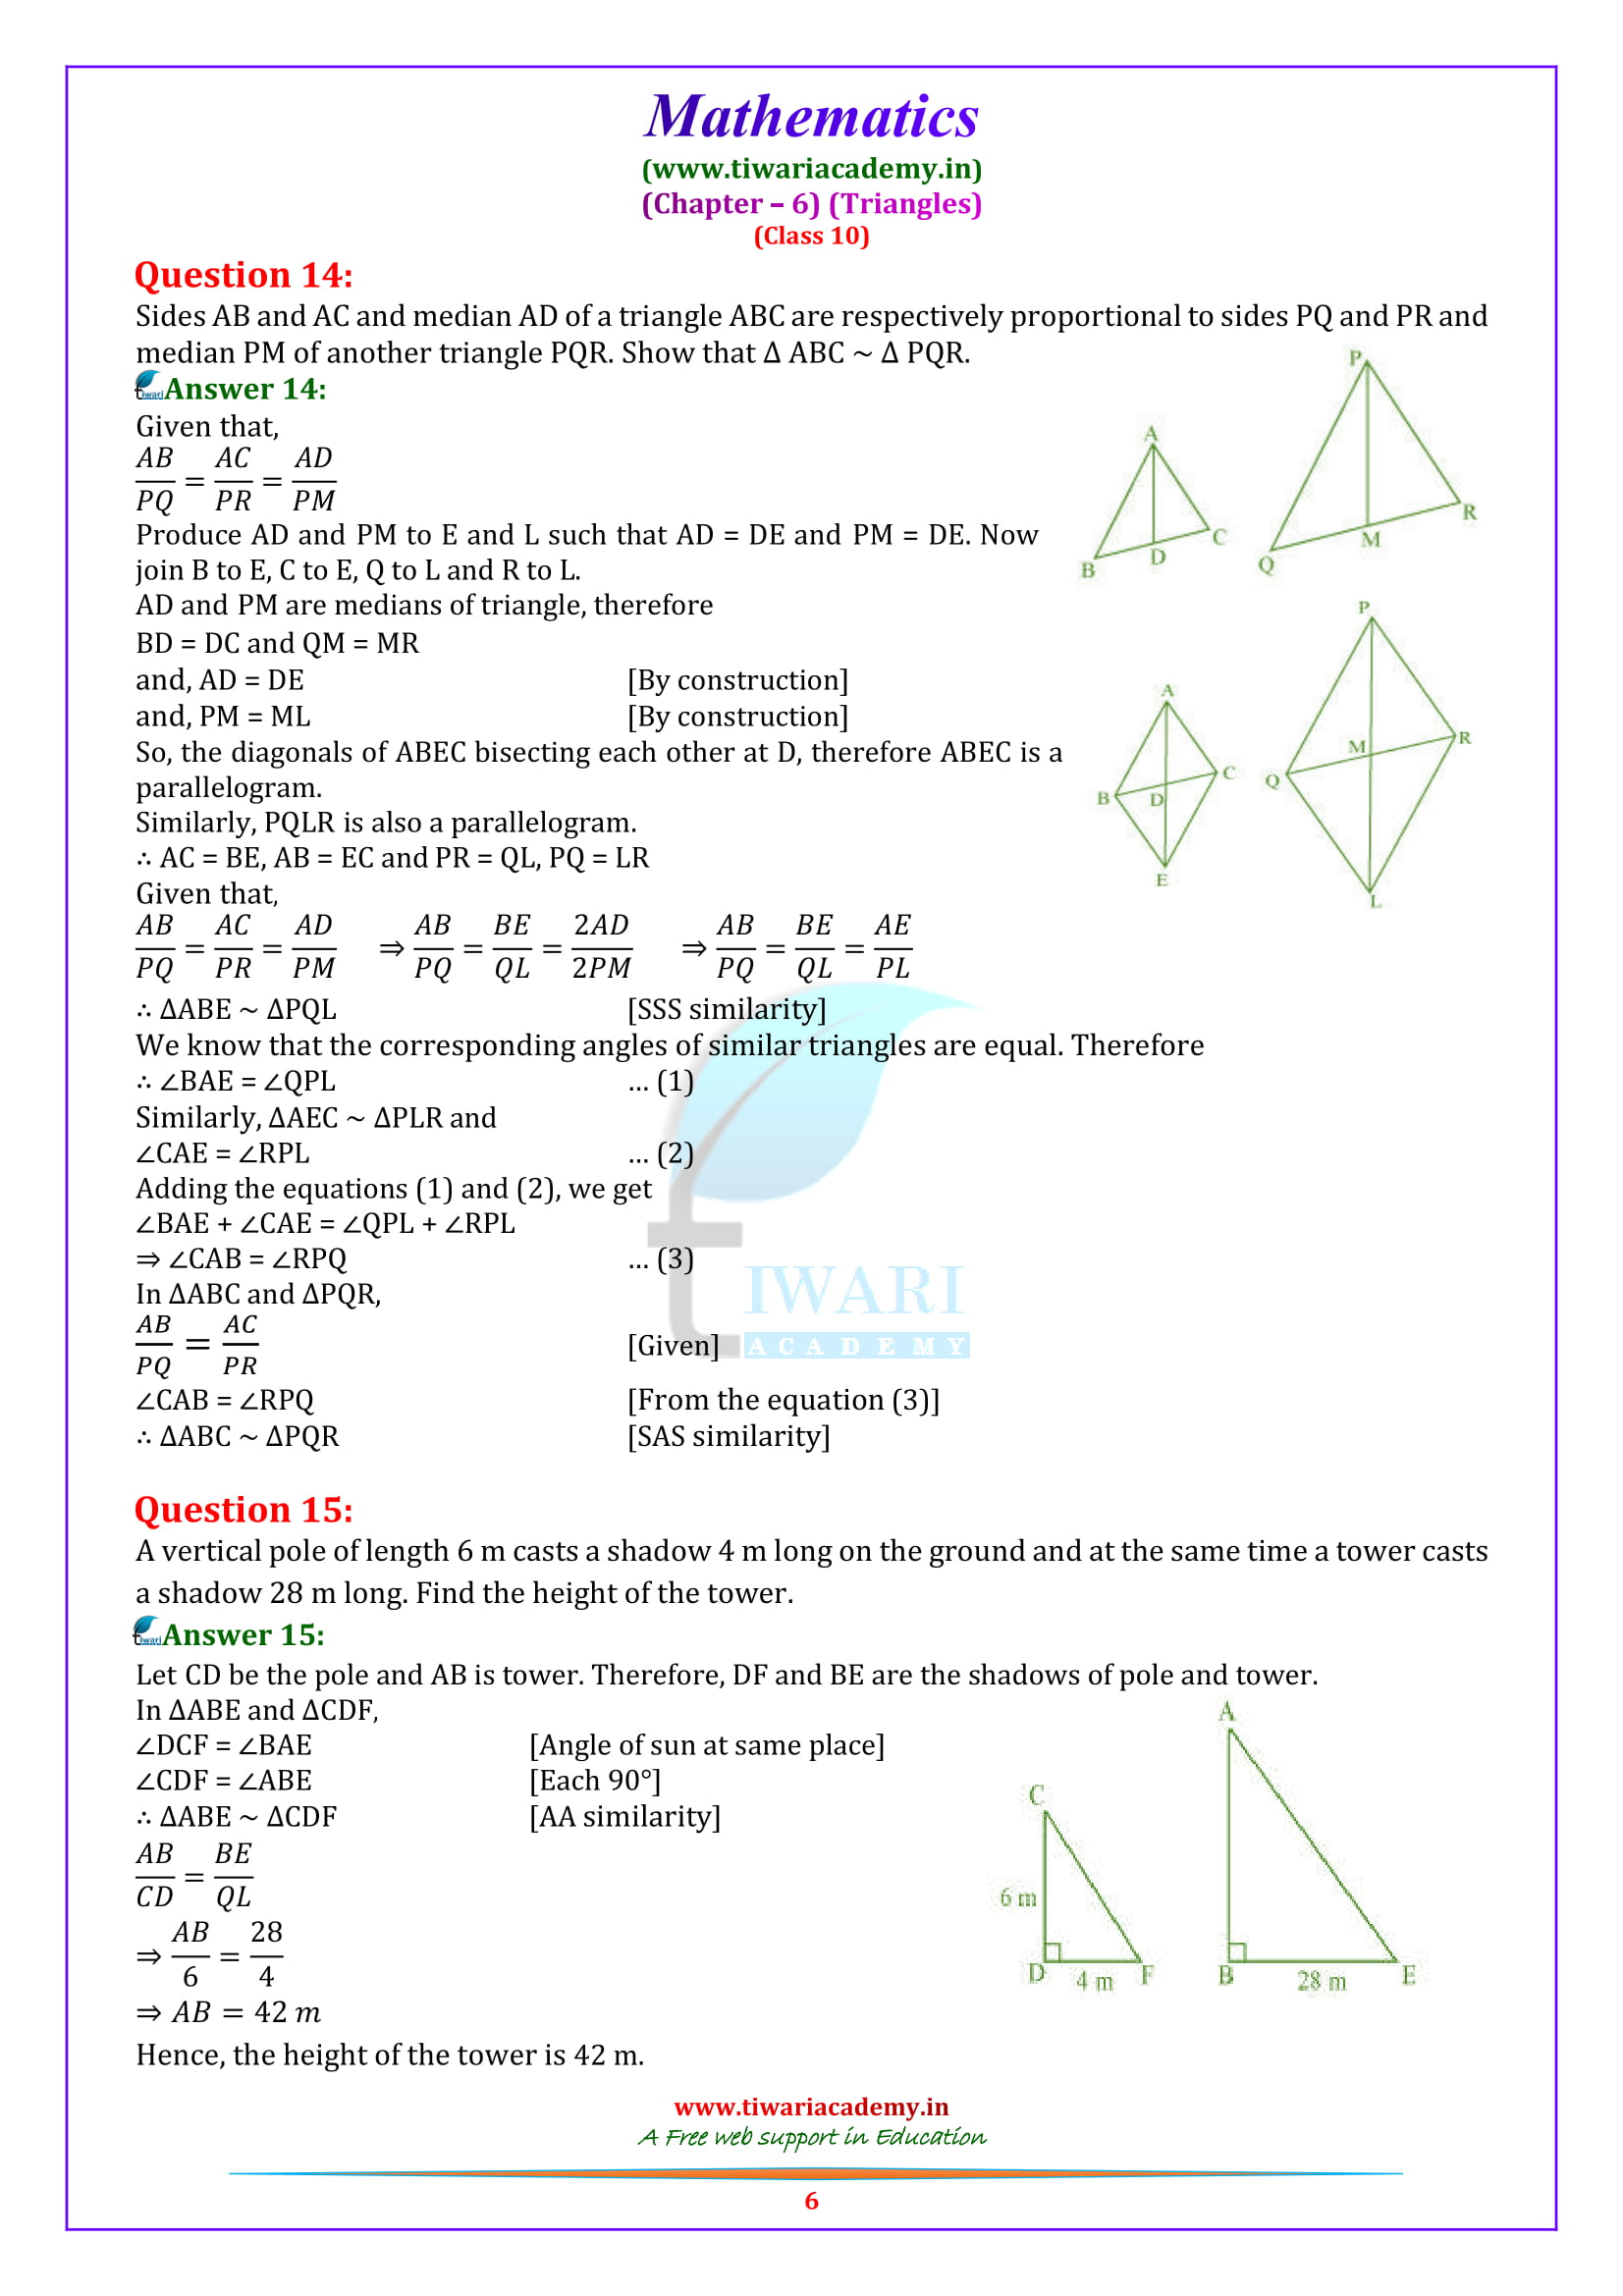 10 Maths Exercise 6.3 Solutions free to download